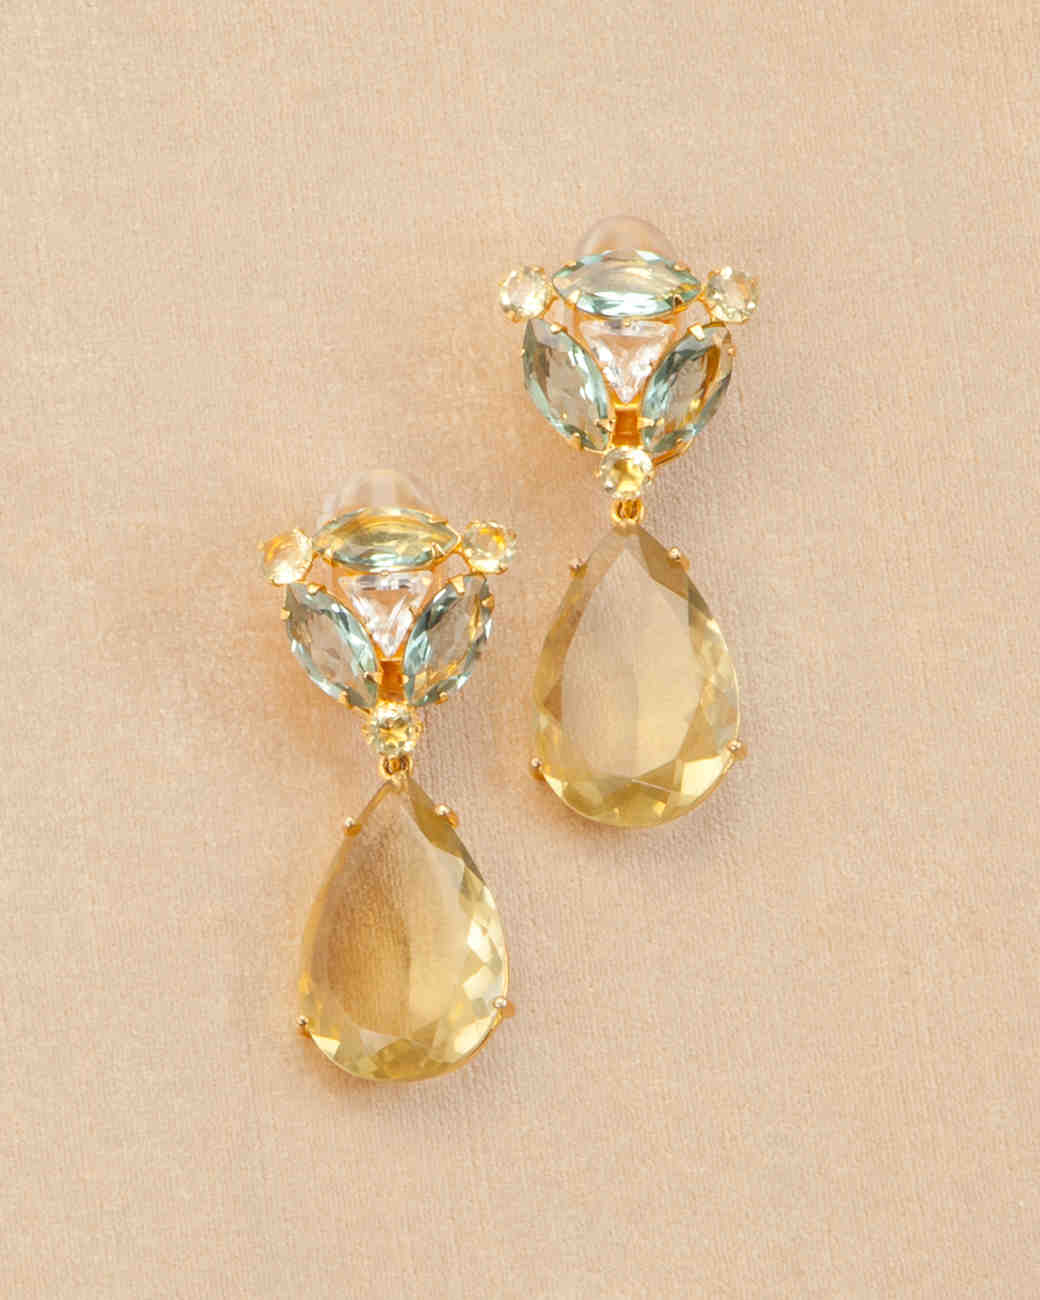 Gold Colorful Gemstoneore Costume Jewelry To Complete Your Wedding Look Martha Weddings